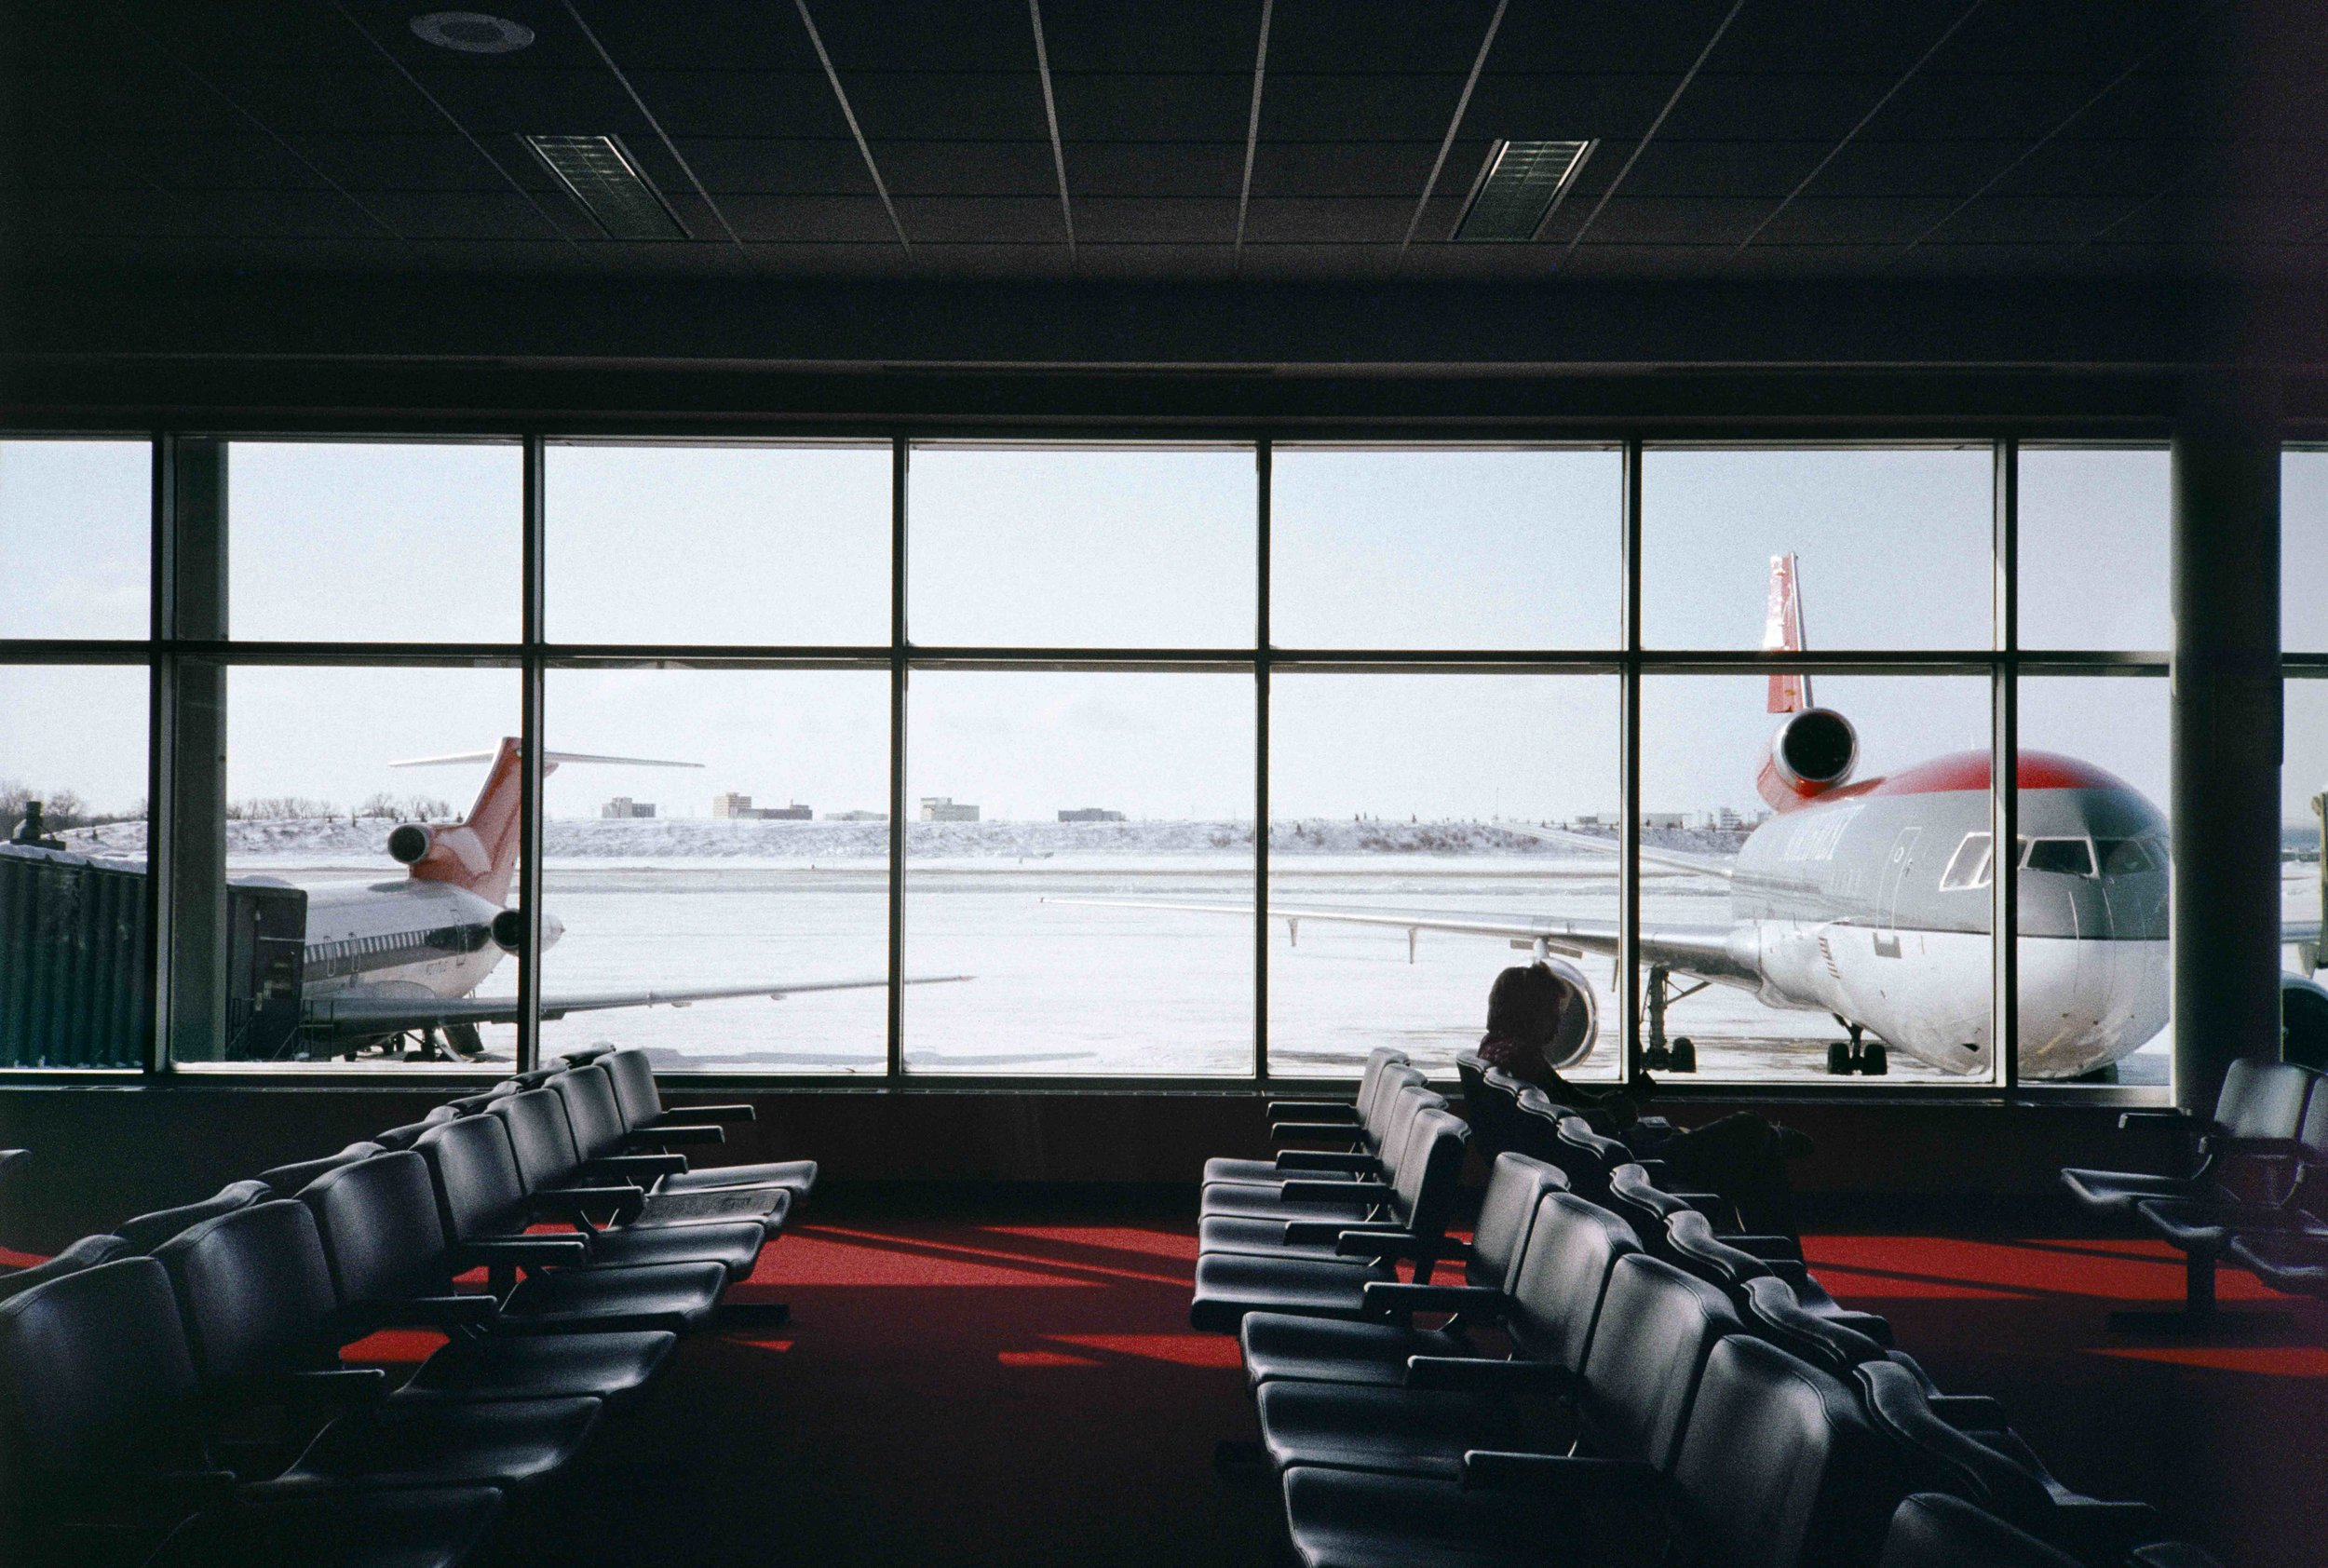 Martha Rosler, Minneapolis, 1991, from the series In the Place of the Public: Airport Series, 1983–ongoing, color print Artwork © Martha Rosler; image courtesy of the artist and Mitchell-Innes & Nash, New York